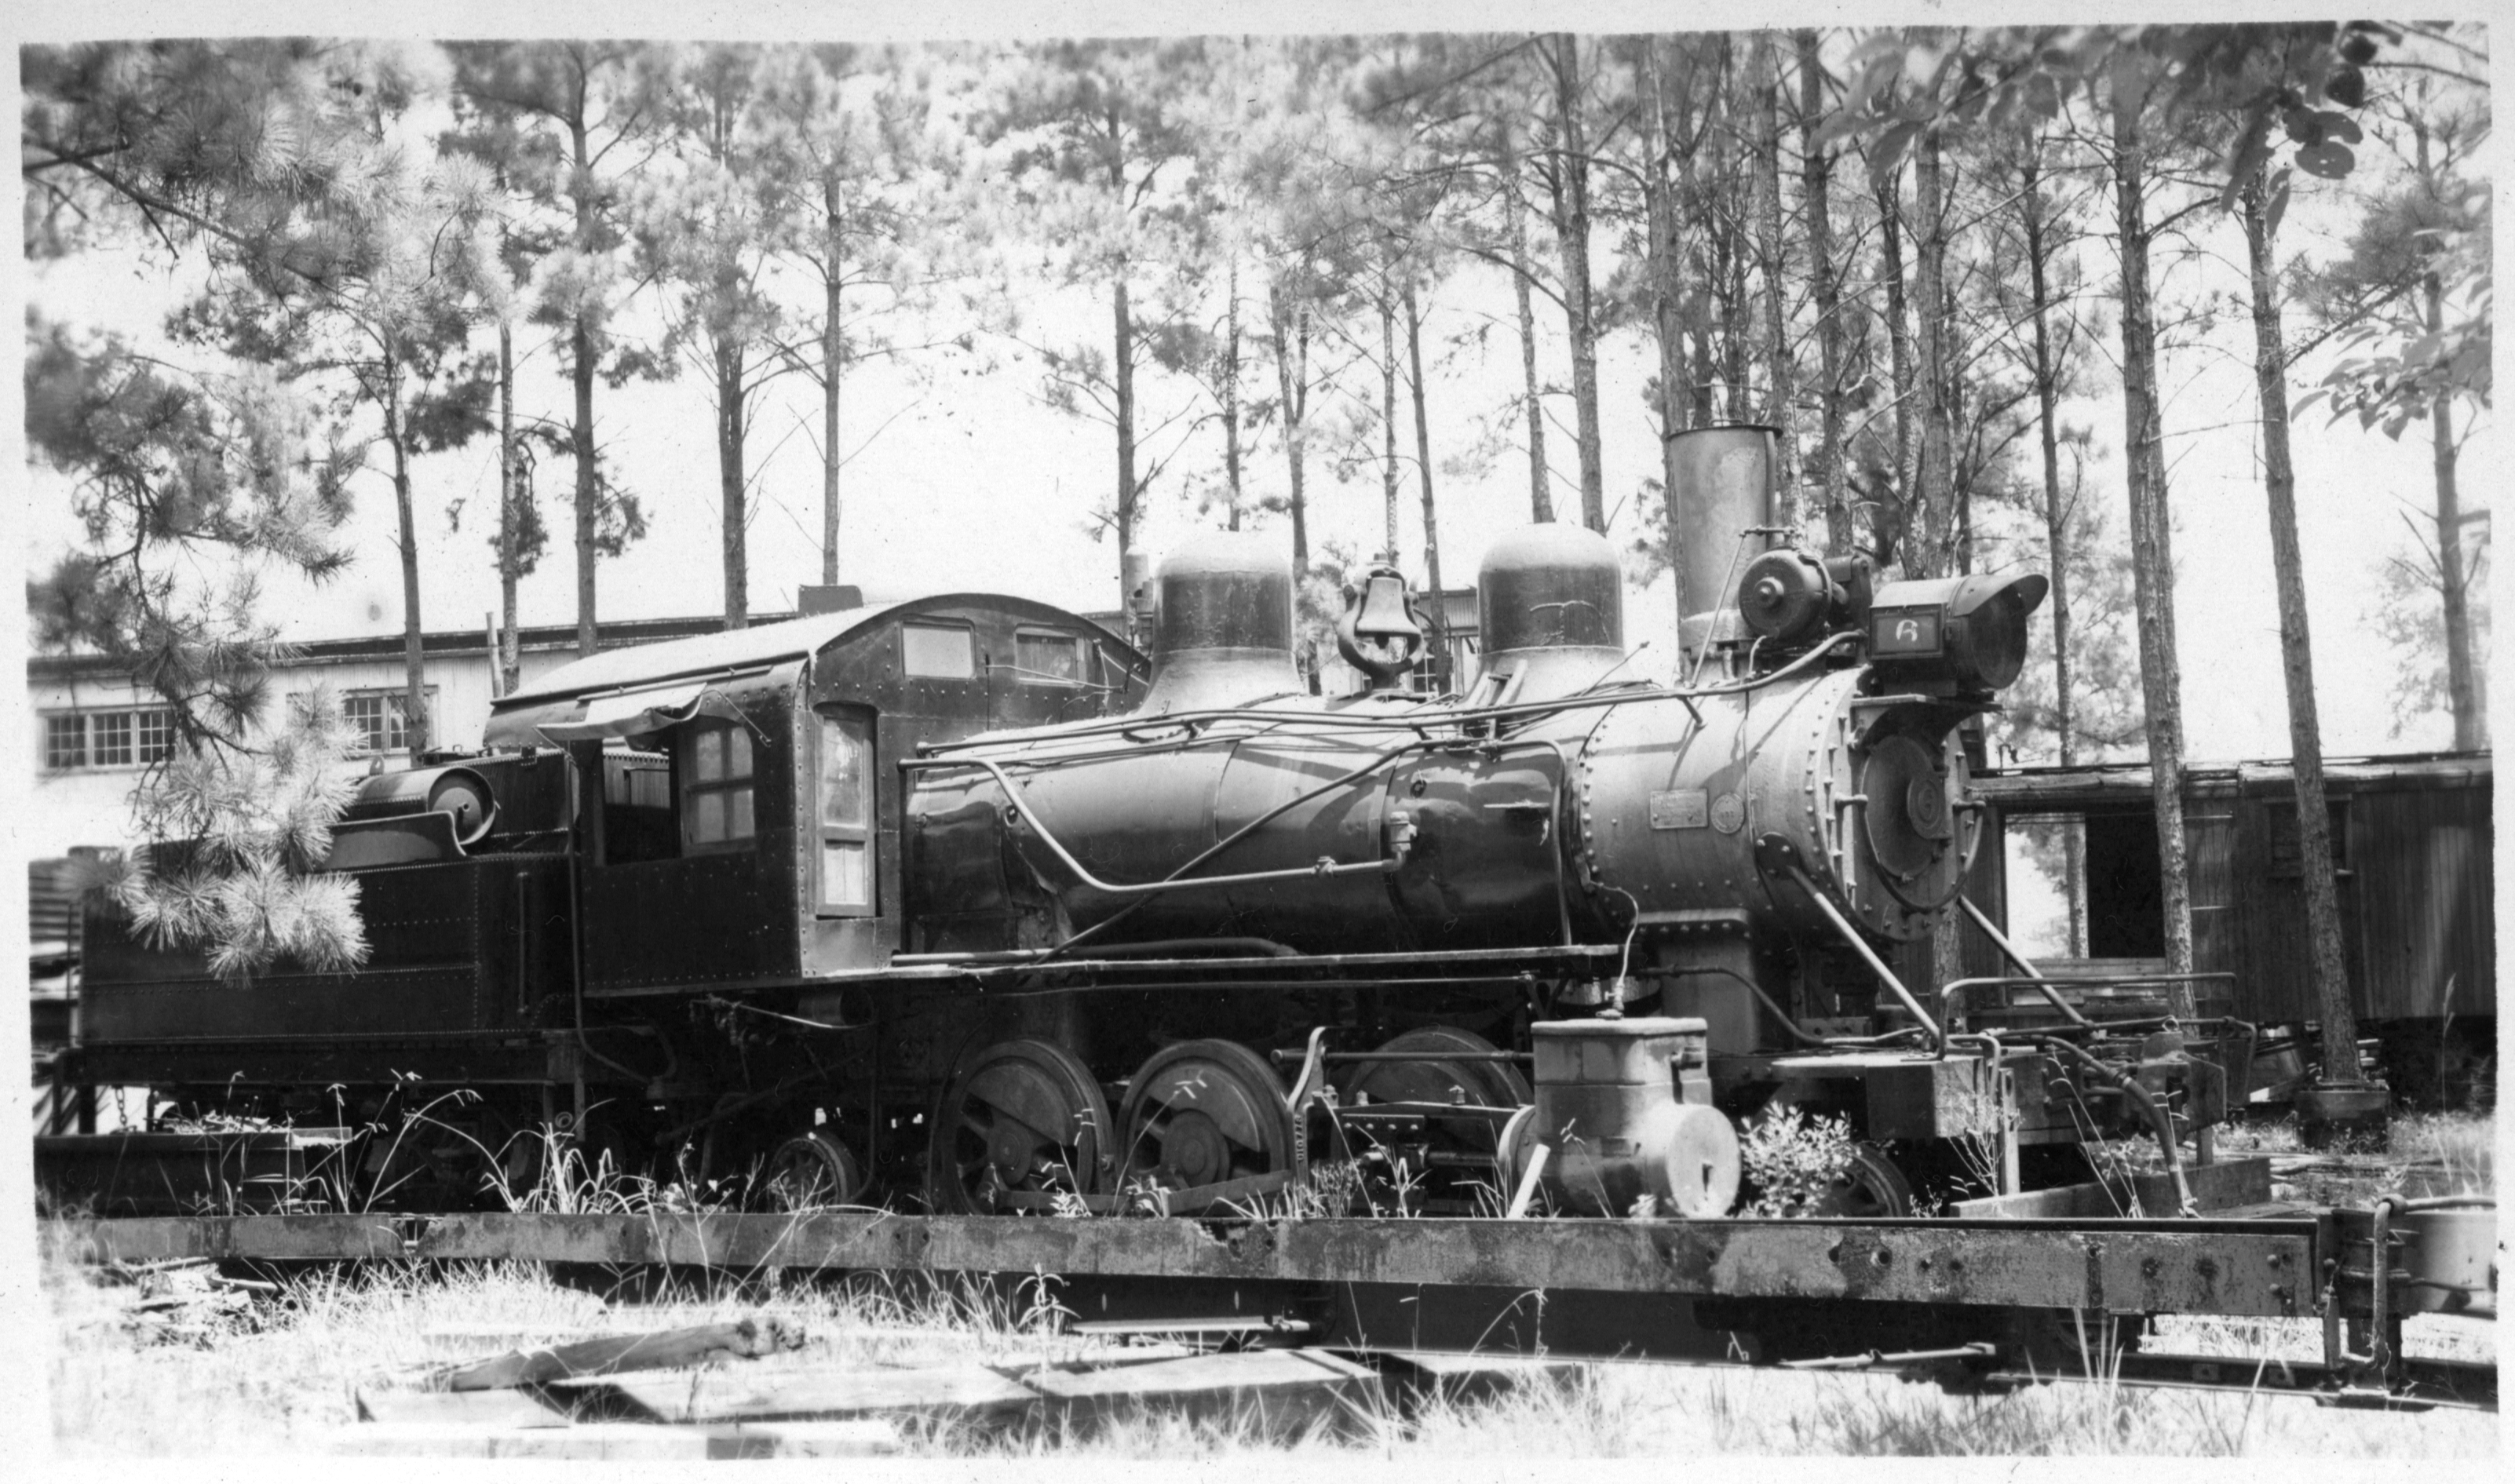 Locomotive #6 (1941)